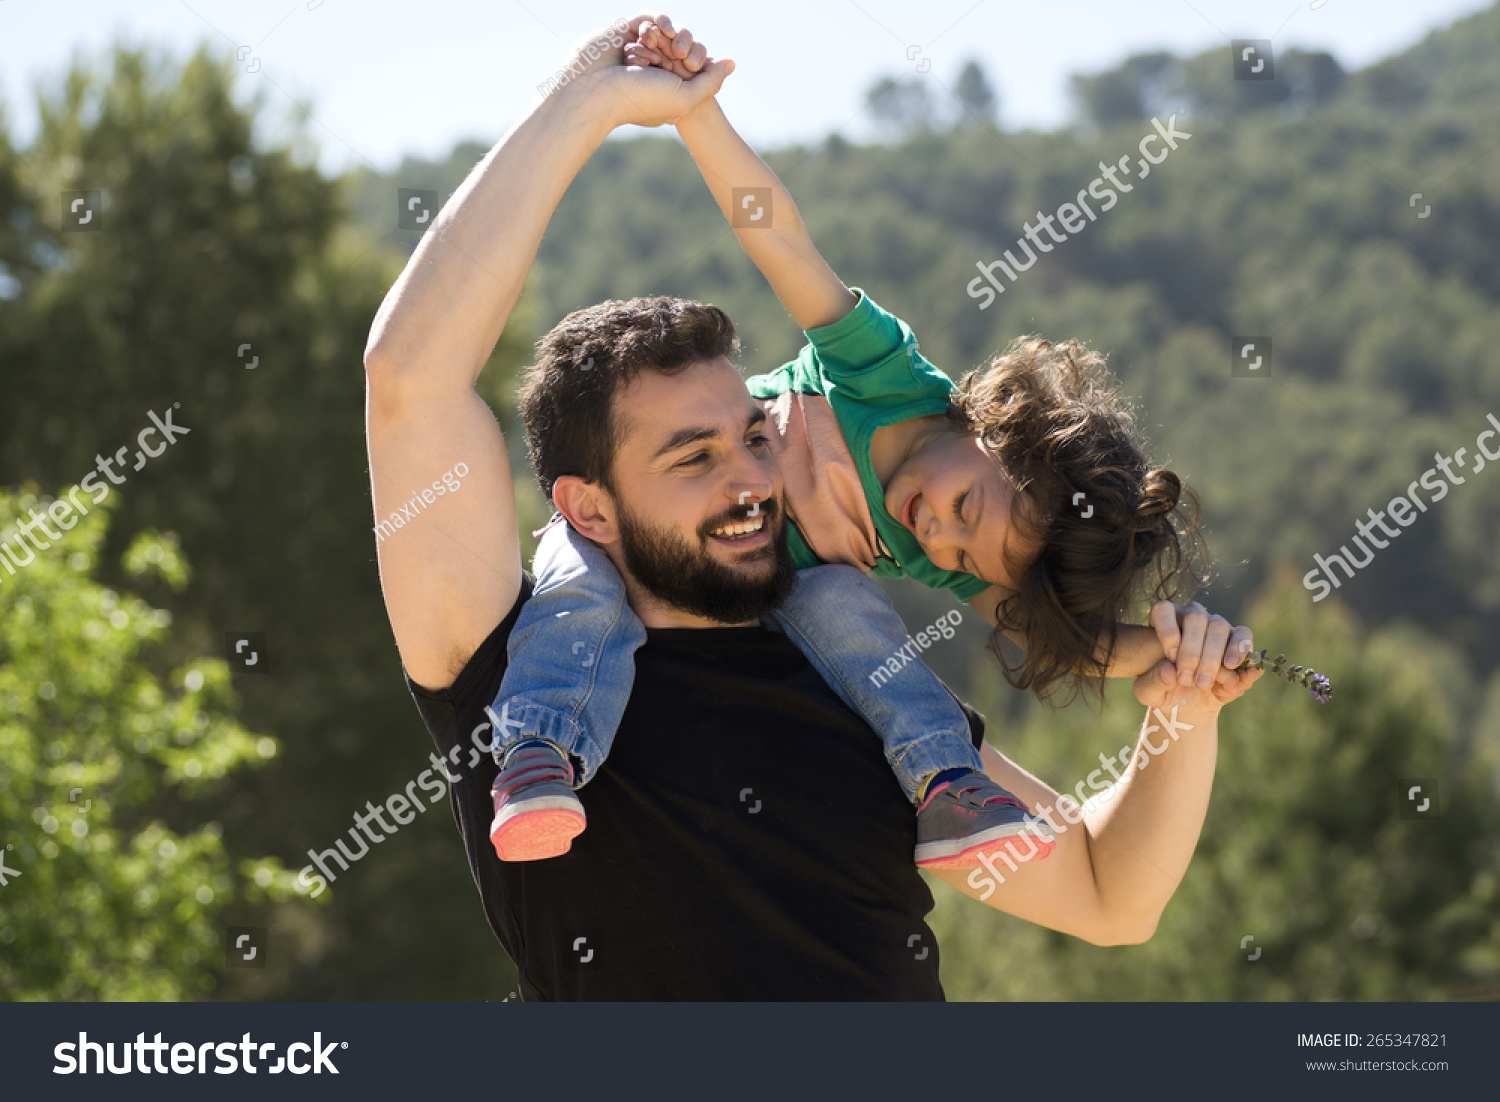 dating a woman with a crazy baby daddy The woman is dating a man who is usually older and richer and has more power you might both get what you want but if you're looking for an equal relationship, you're looking in the wrong place.